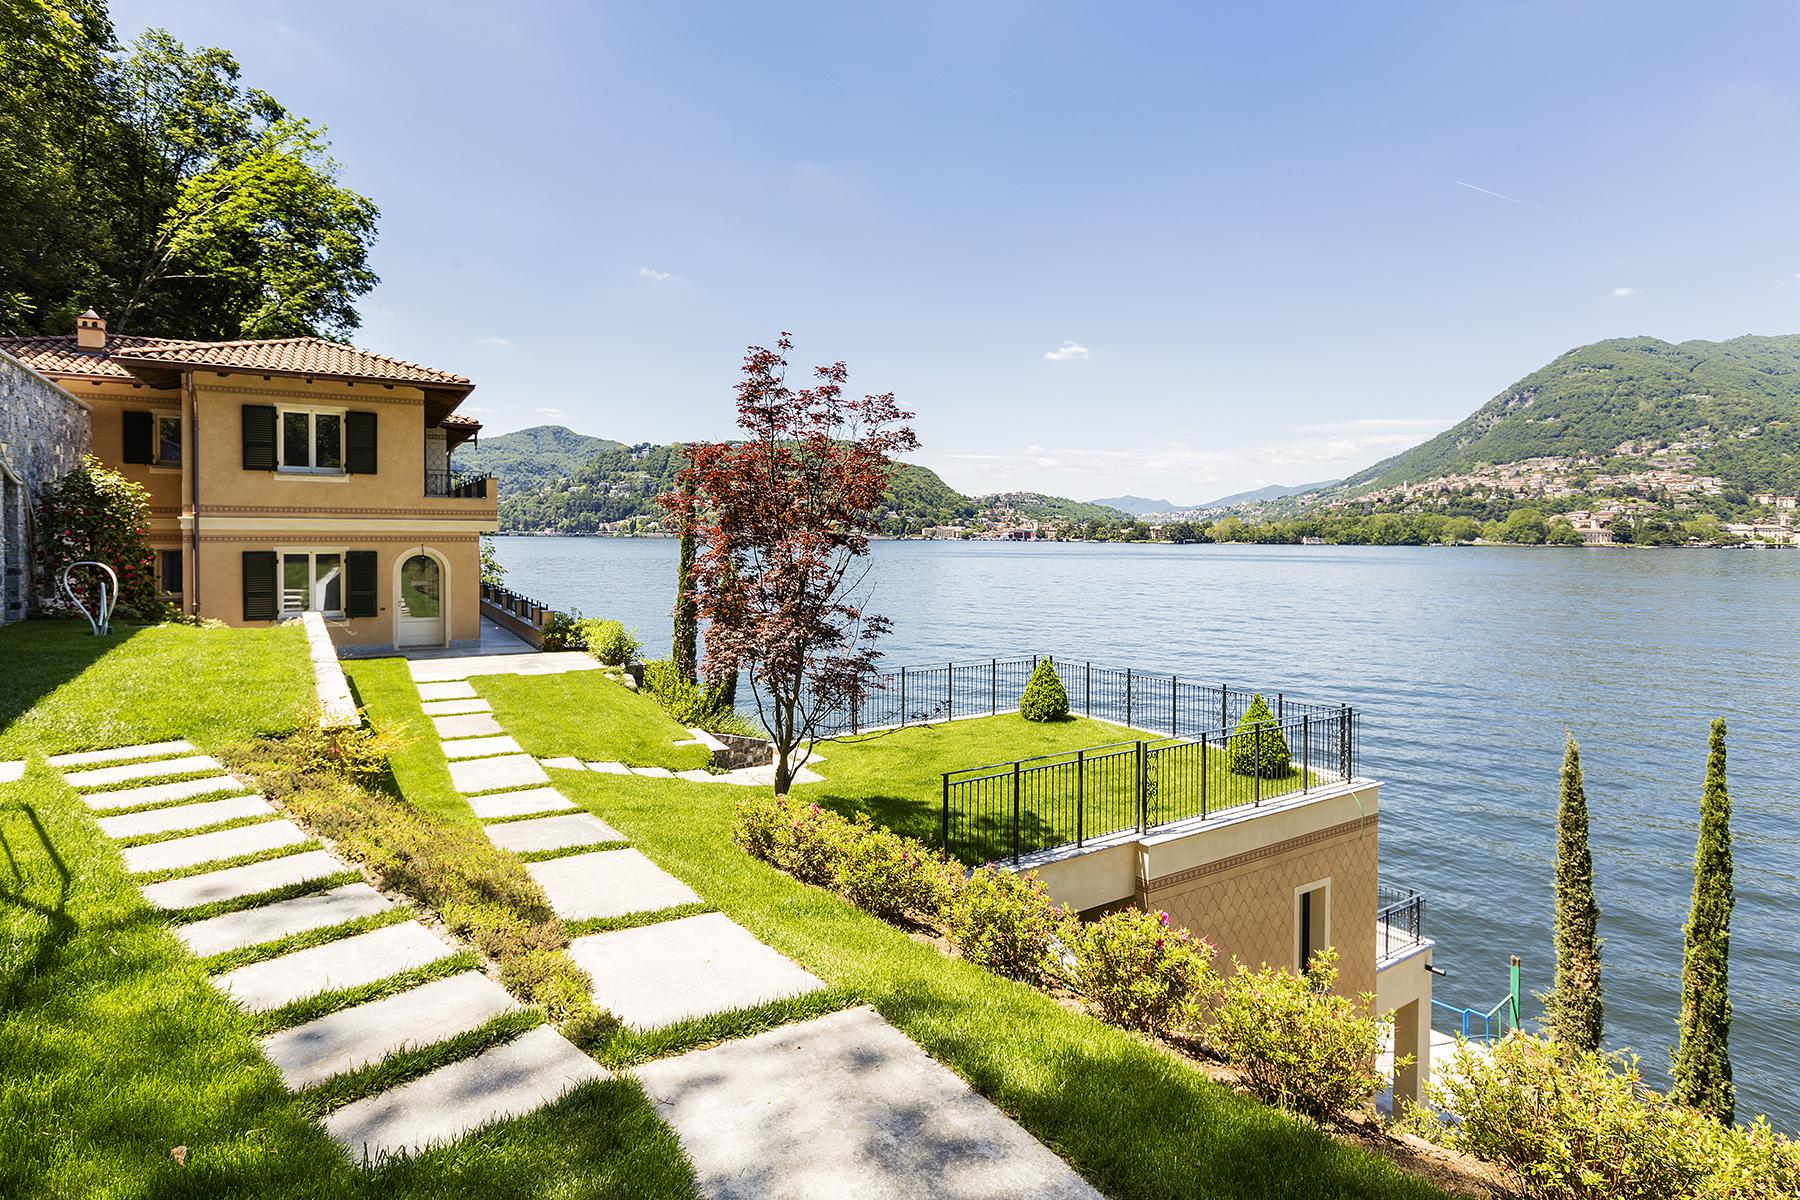 Fascinating villa in one of the most strategic areas of the lake - 13